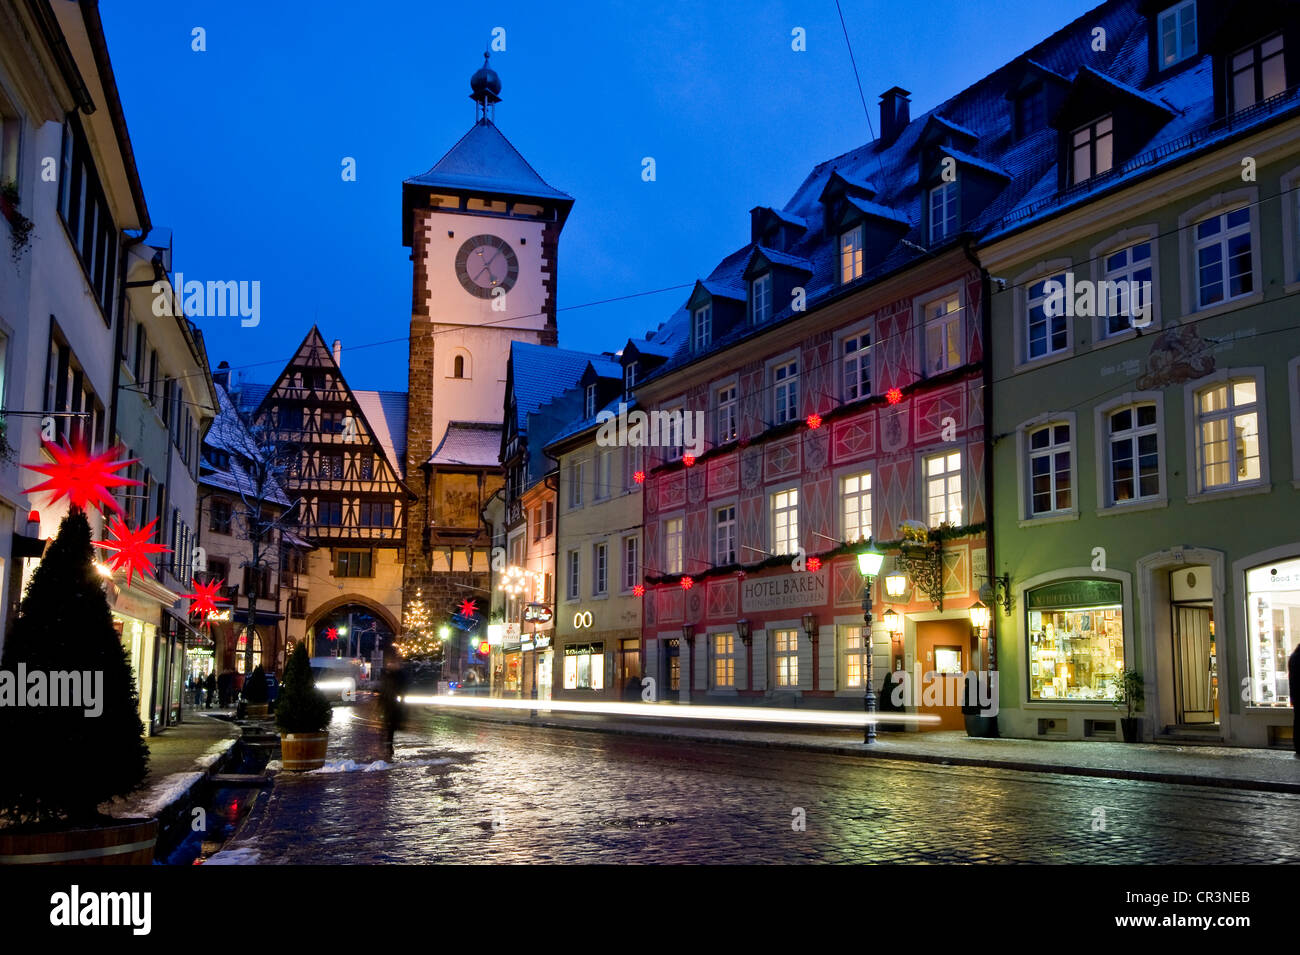 Freiburg Im Breisgau Shopping Schwabentor Gate Tower And Christmassy And Snowy Old Town